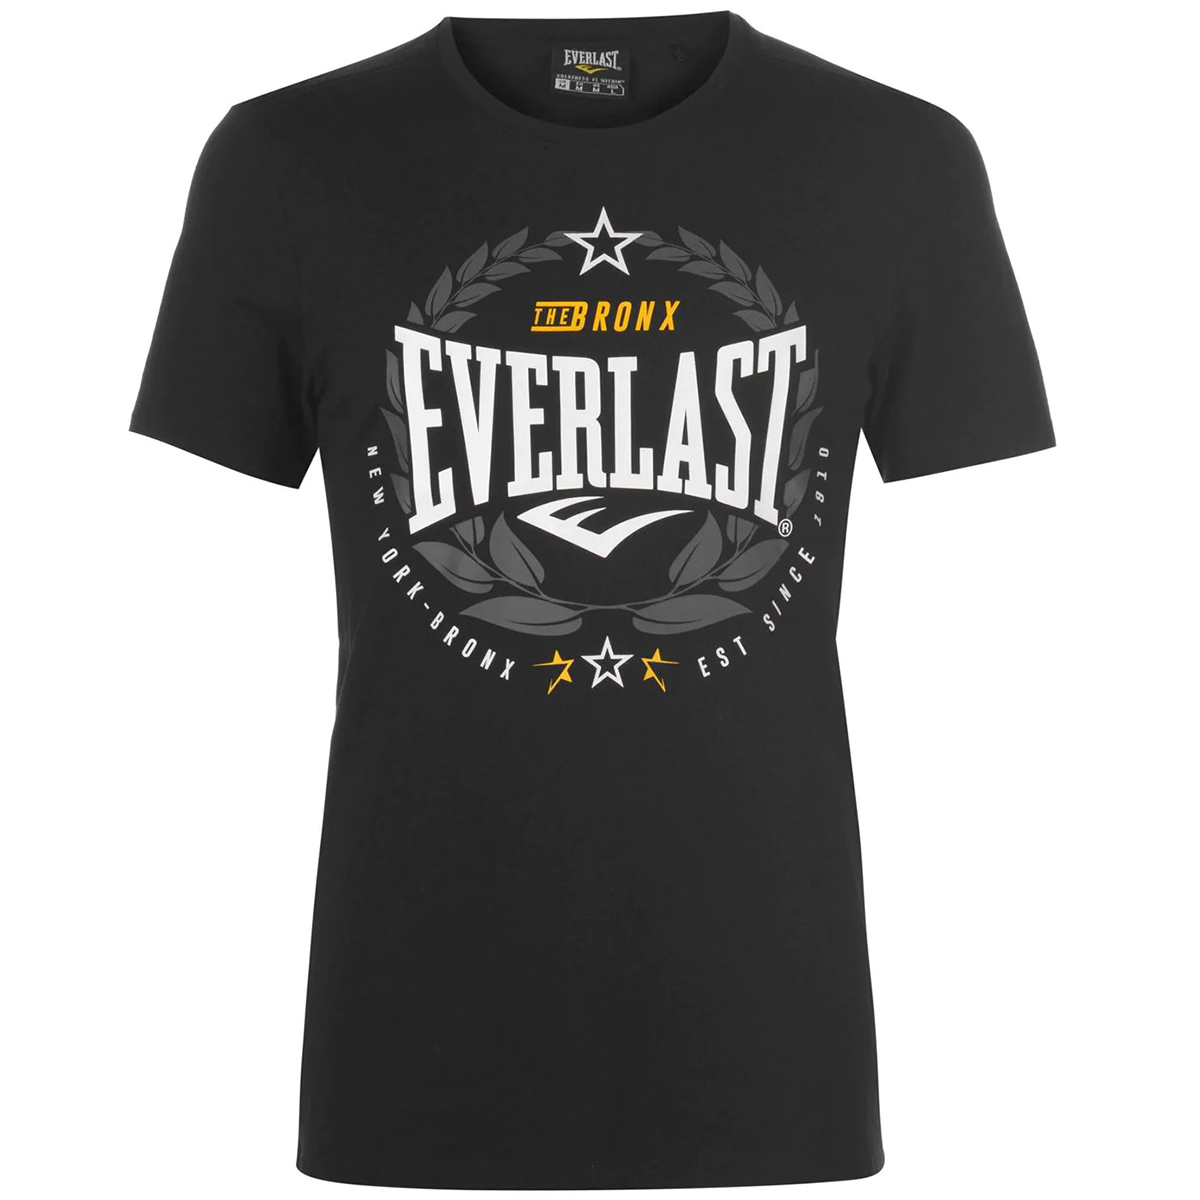 Everlast Men's Laurel Short-Sleeve Tee - Black, XXL